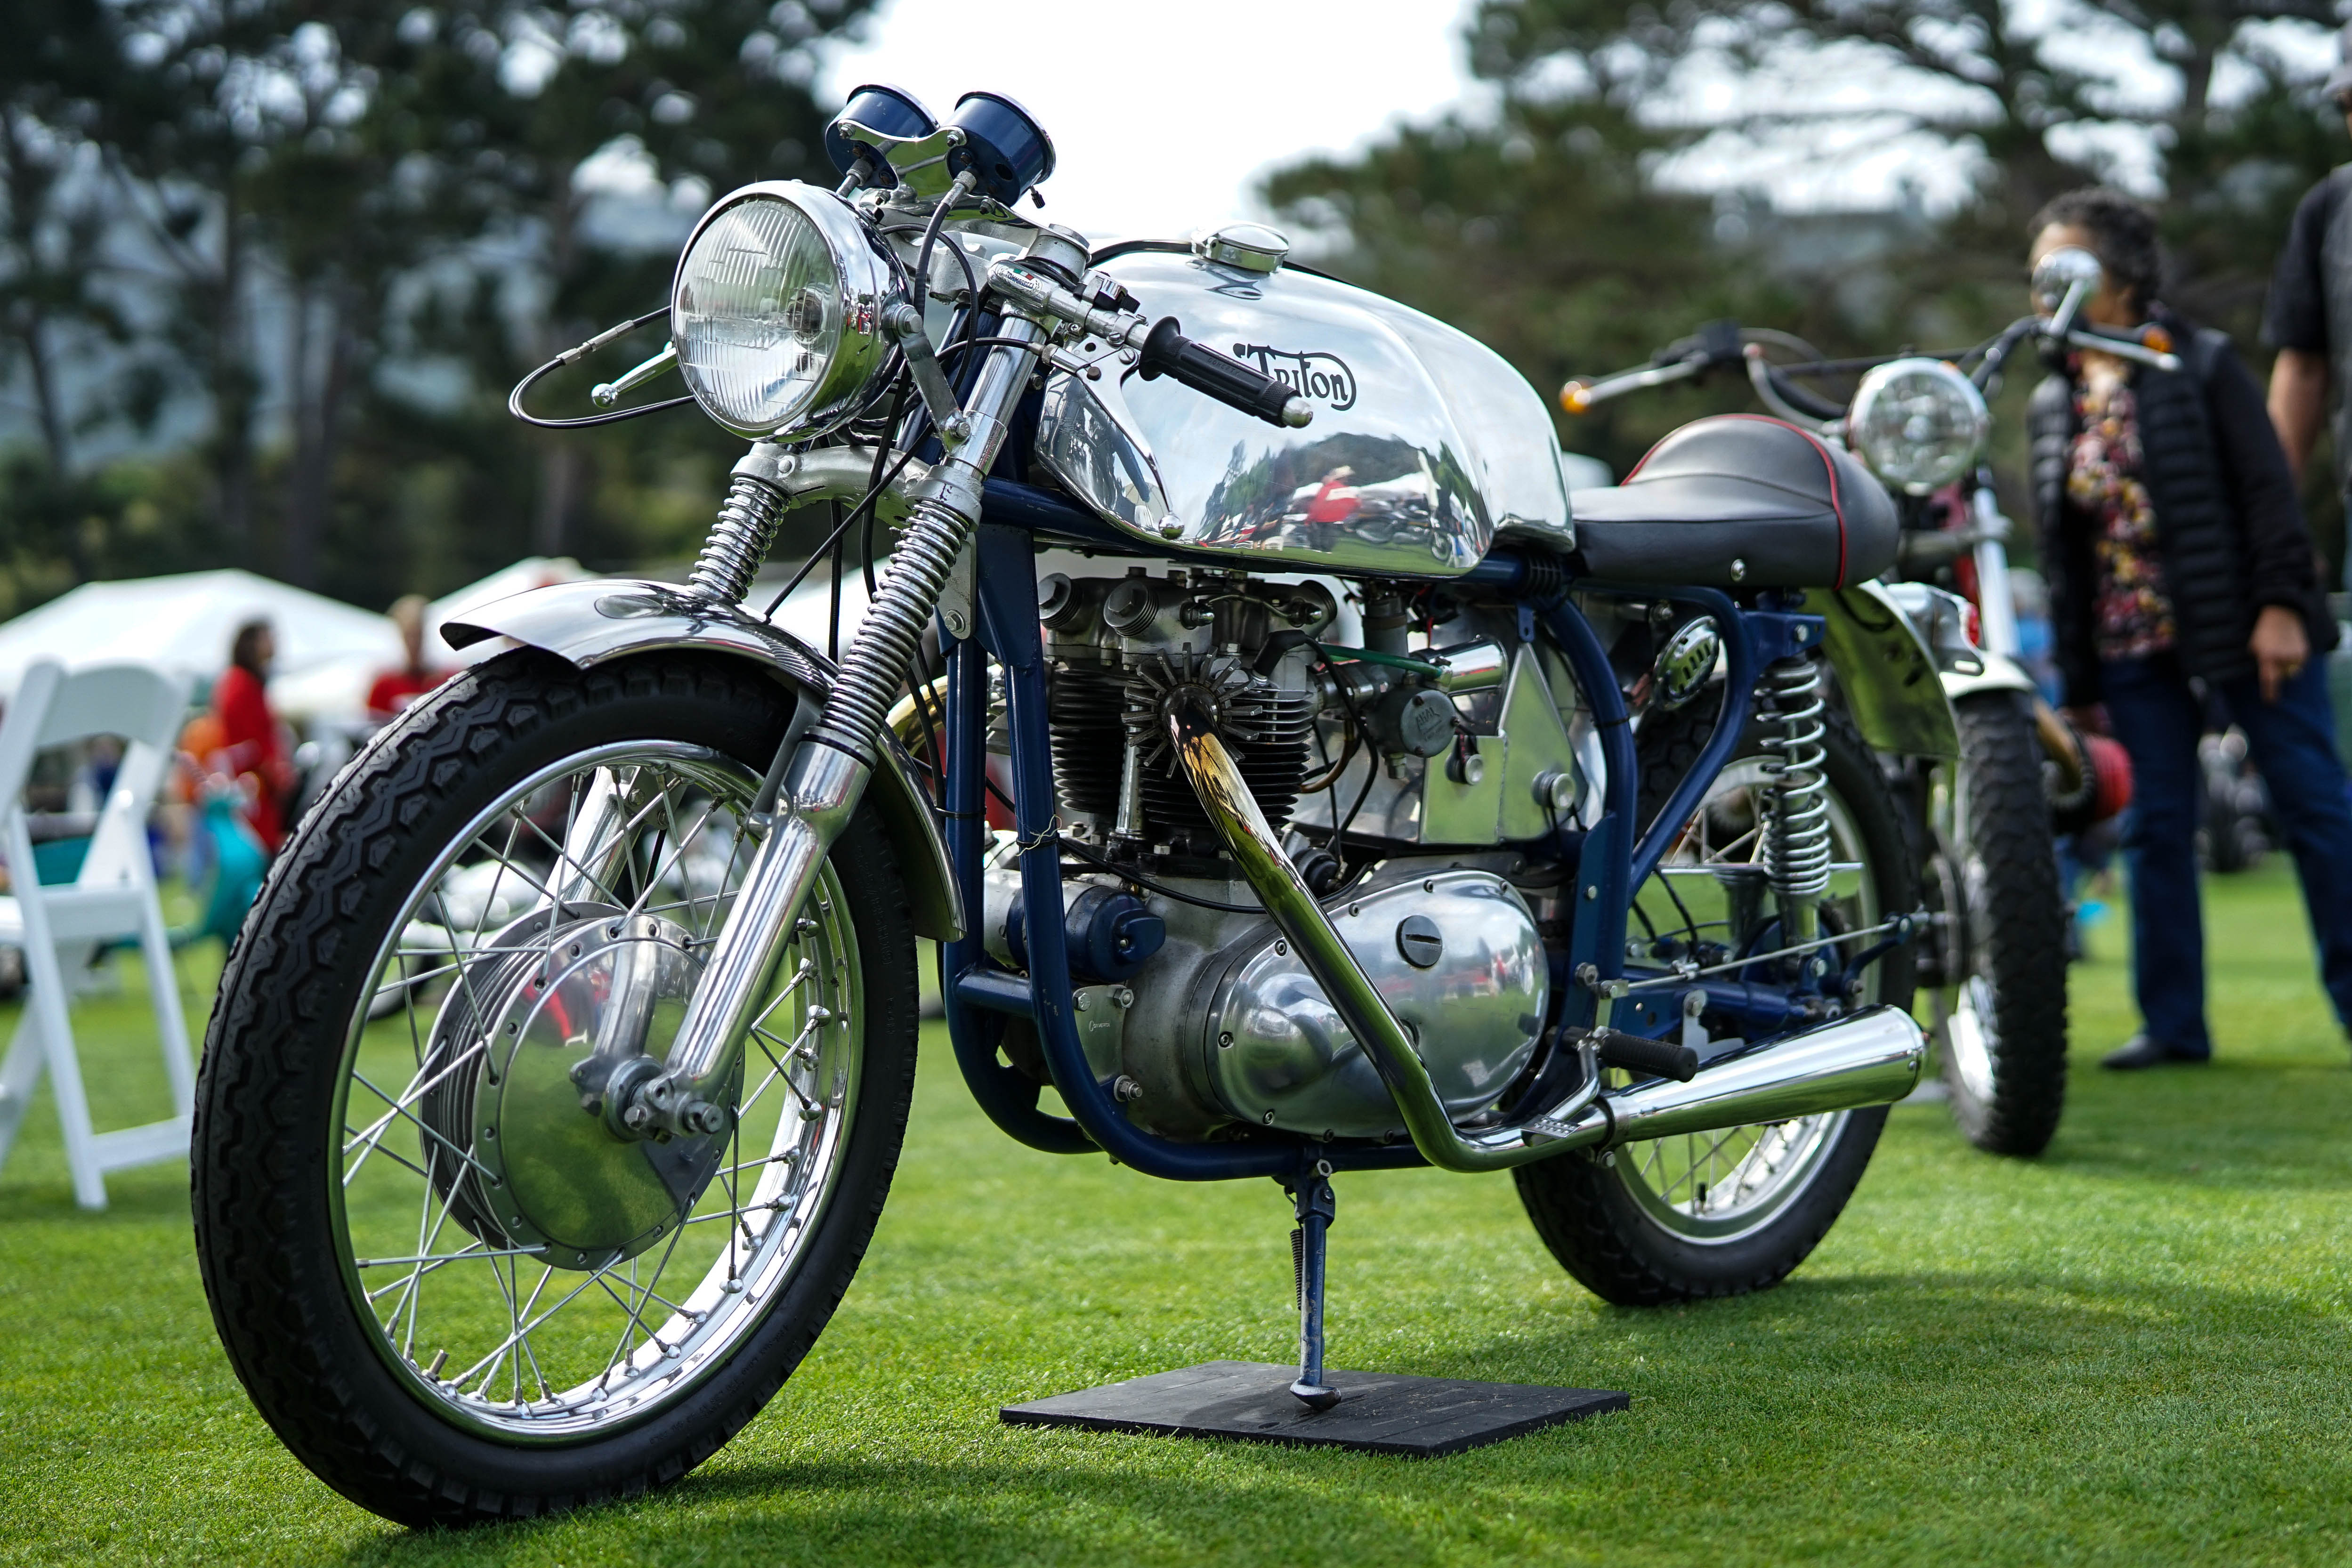 Vintage Triton cafe racer motorcycle